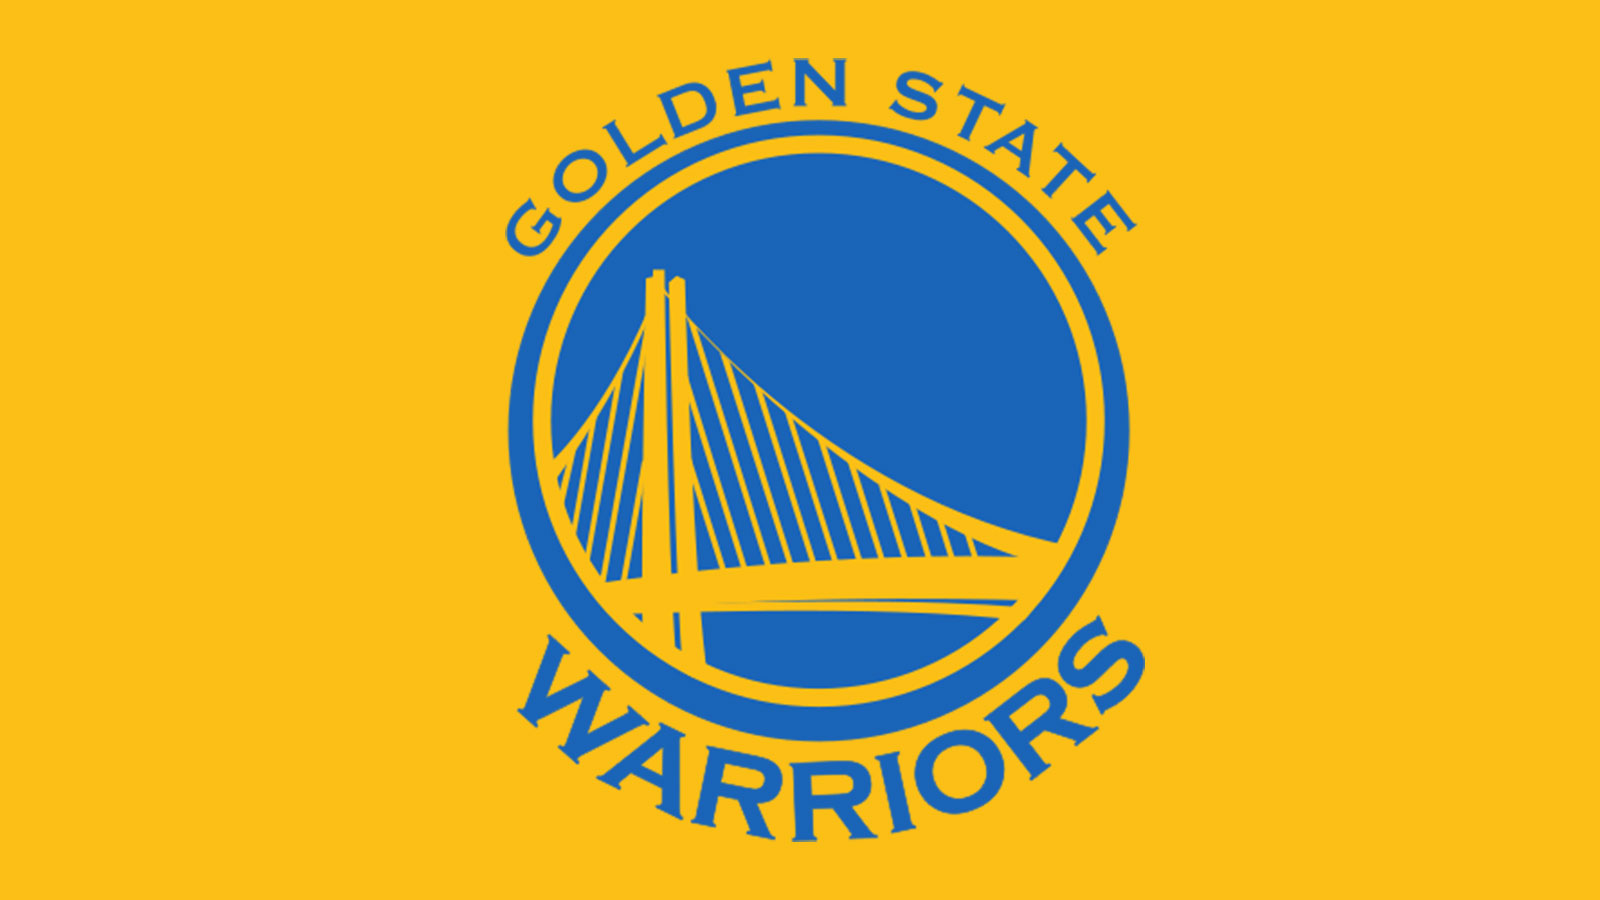 golden state warriors from what city